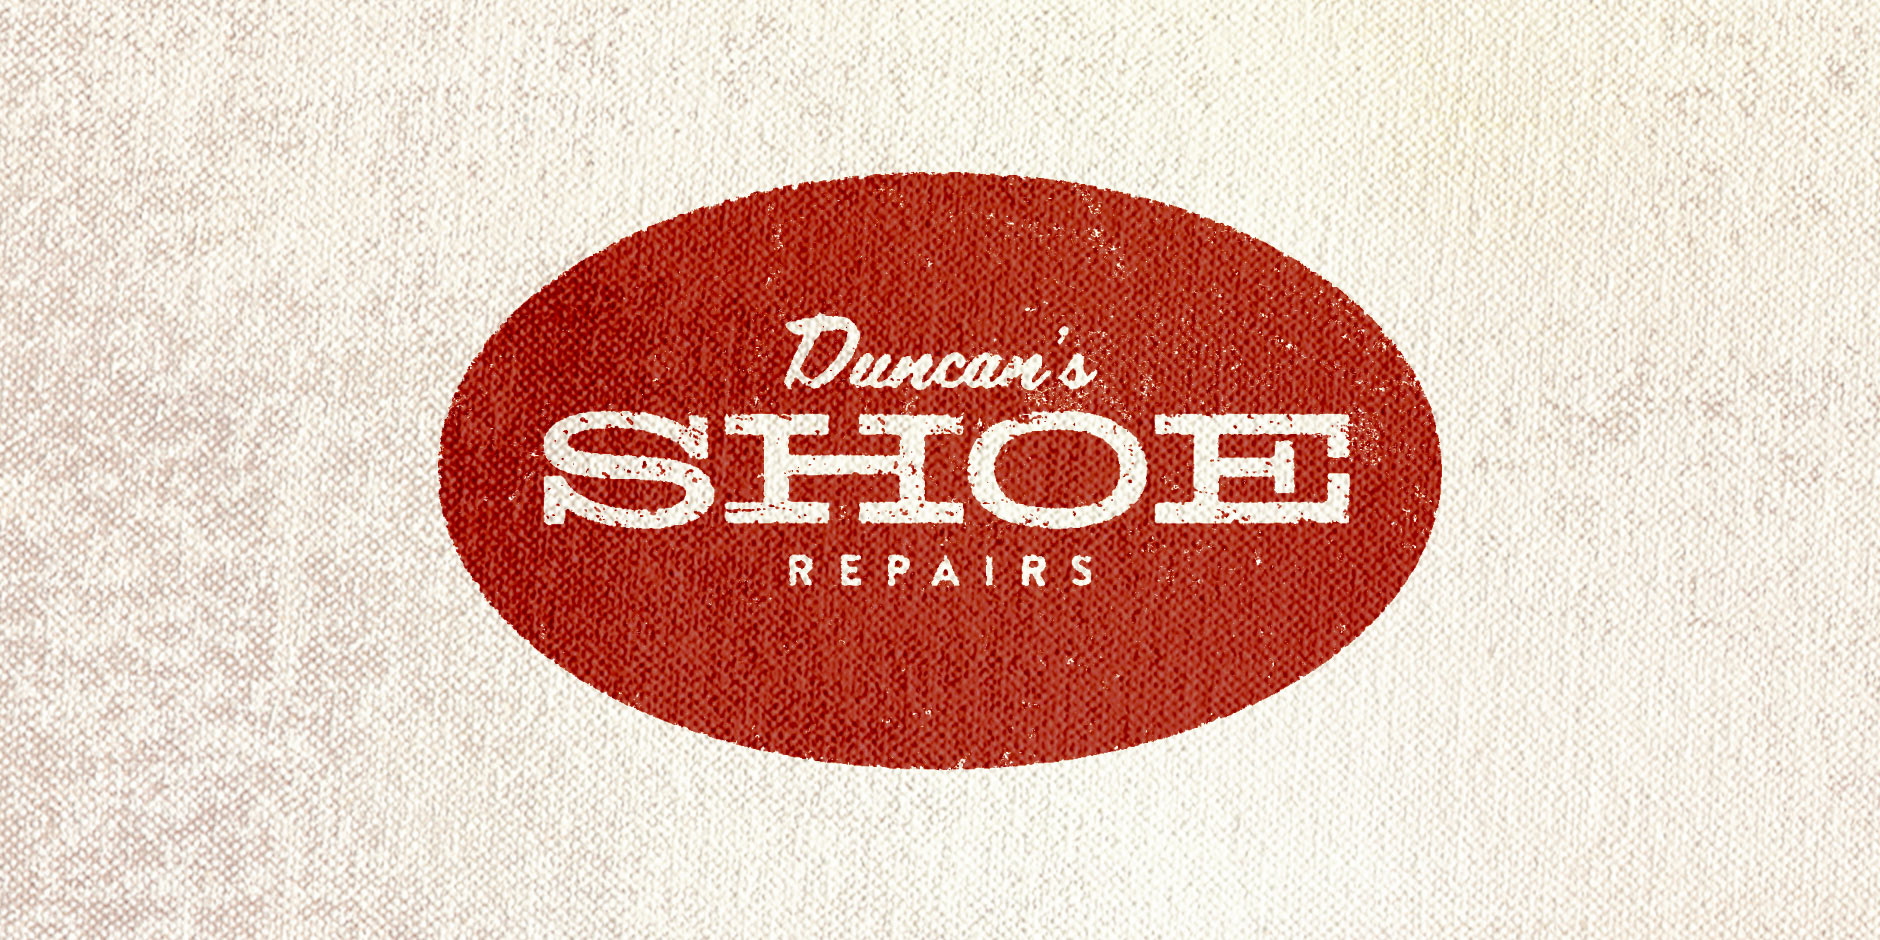 Fixer of shoes and cutter of keys, Duncan needed a updated but old style typographic solution